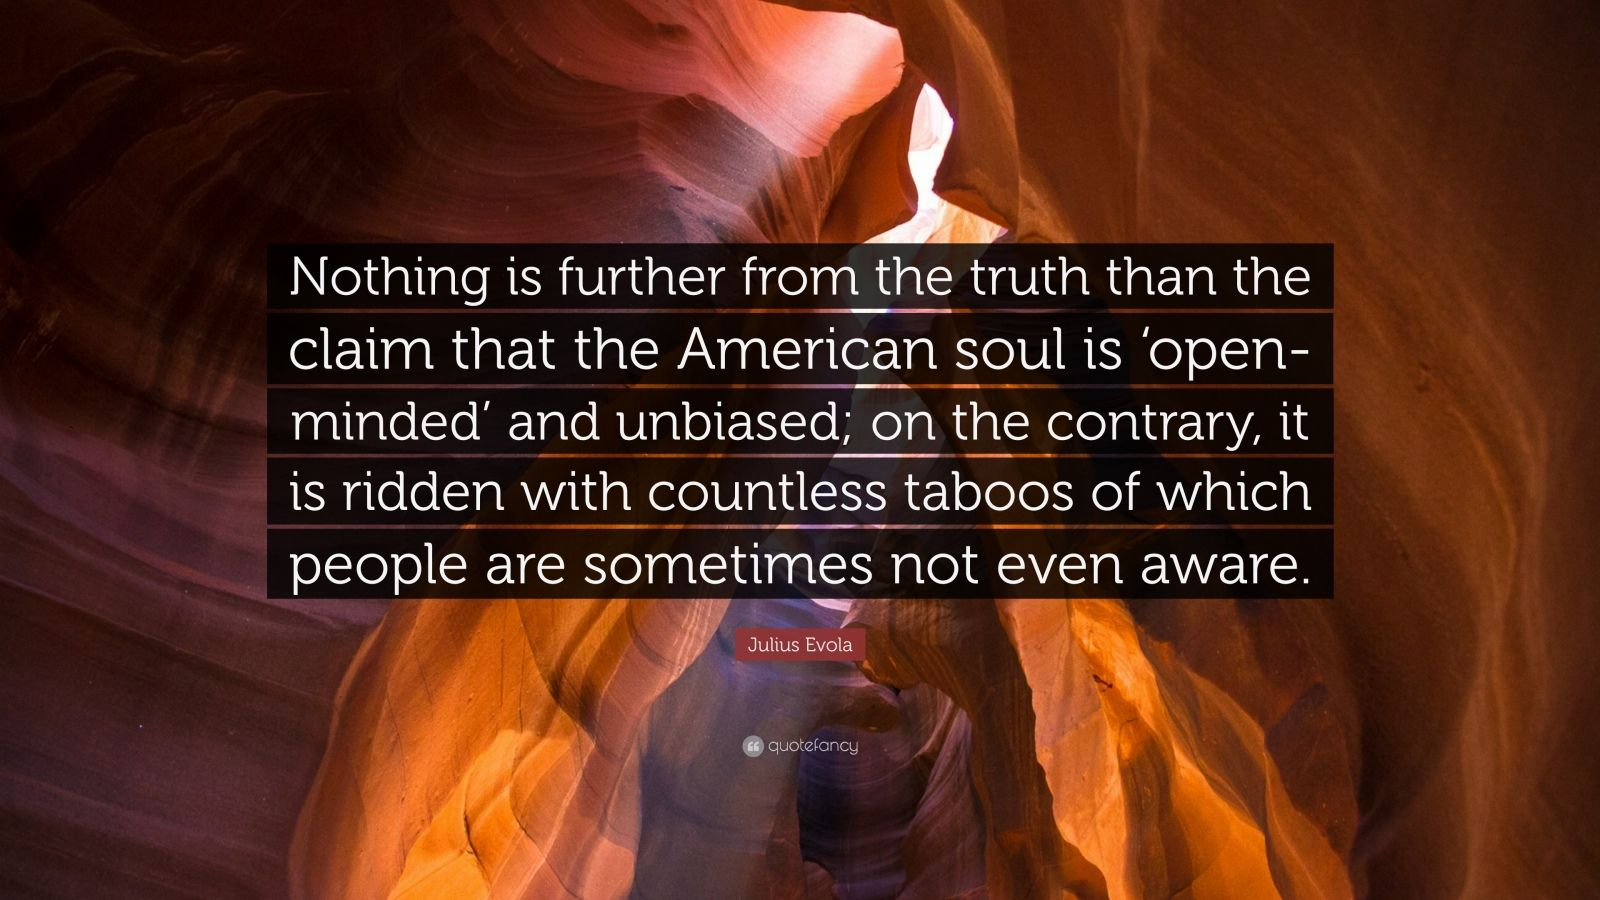 """Julius Evola Quote: """"Nothing is further from the truth than the claim that the American soul is 'open-minded' and unbiased; on the contrary, it is ridden with countless taboos of which people are sometimes not even aware."""""""